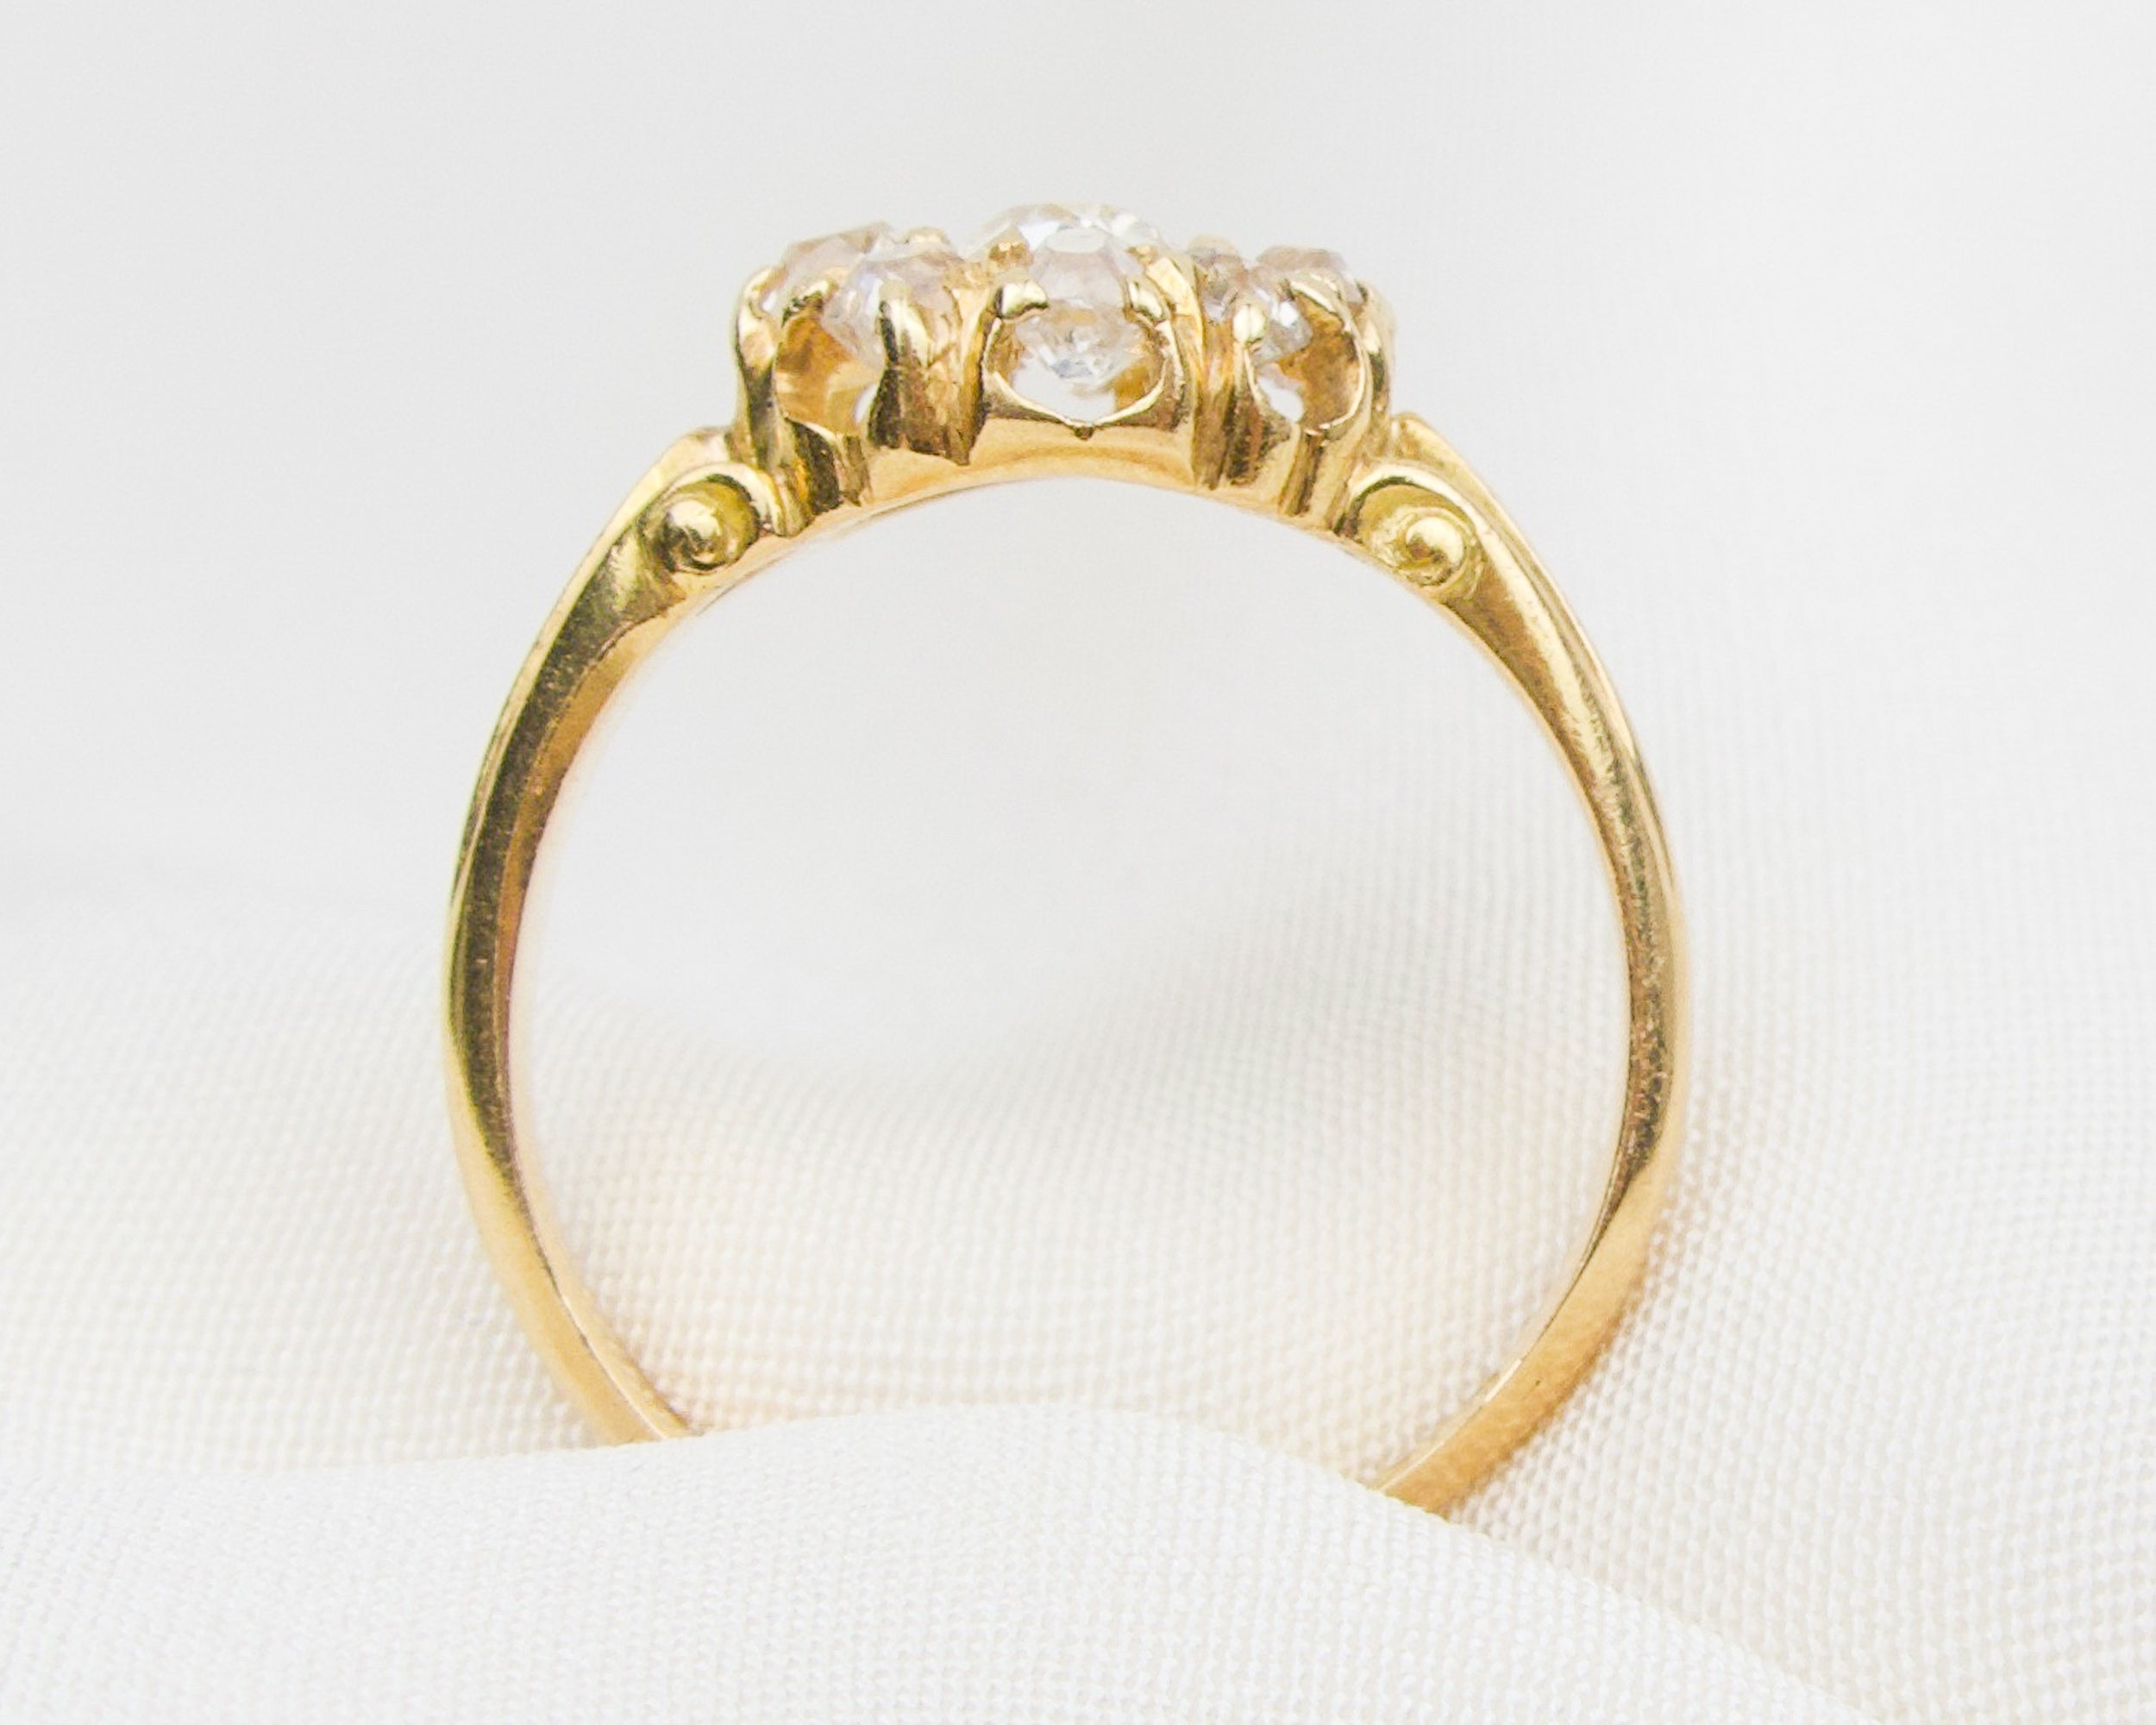 Victorian 18KT Gold Diamond Cluster Ring